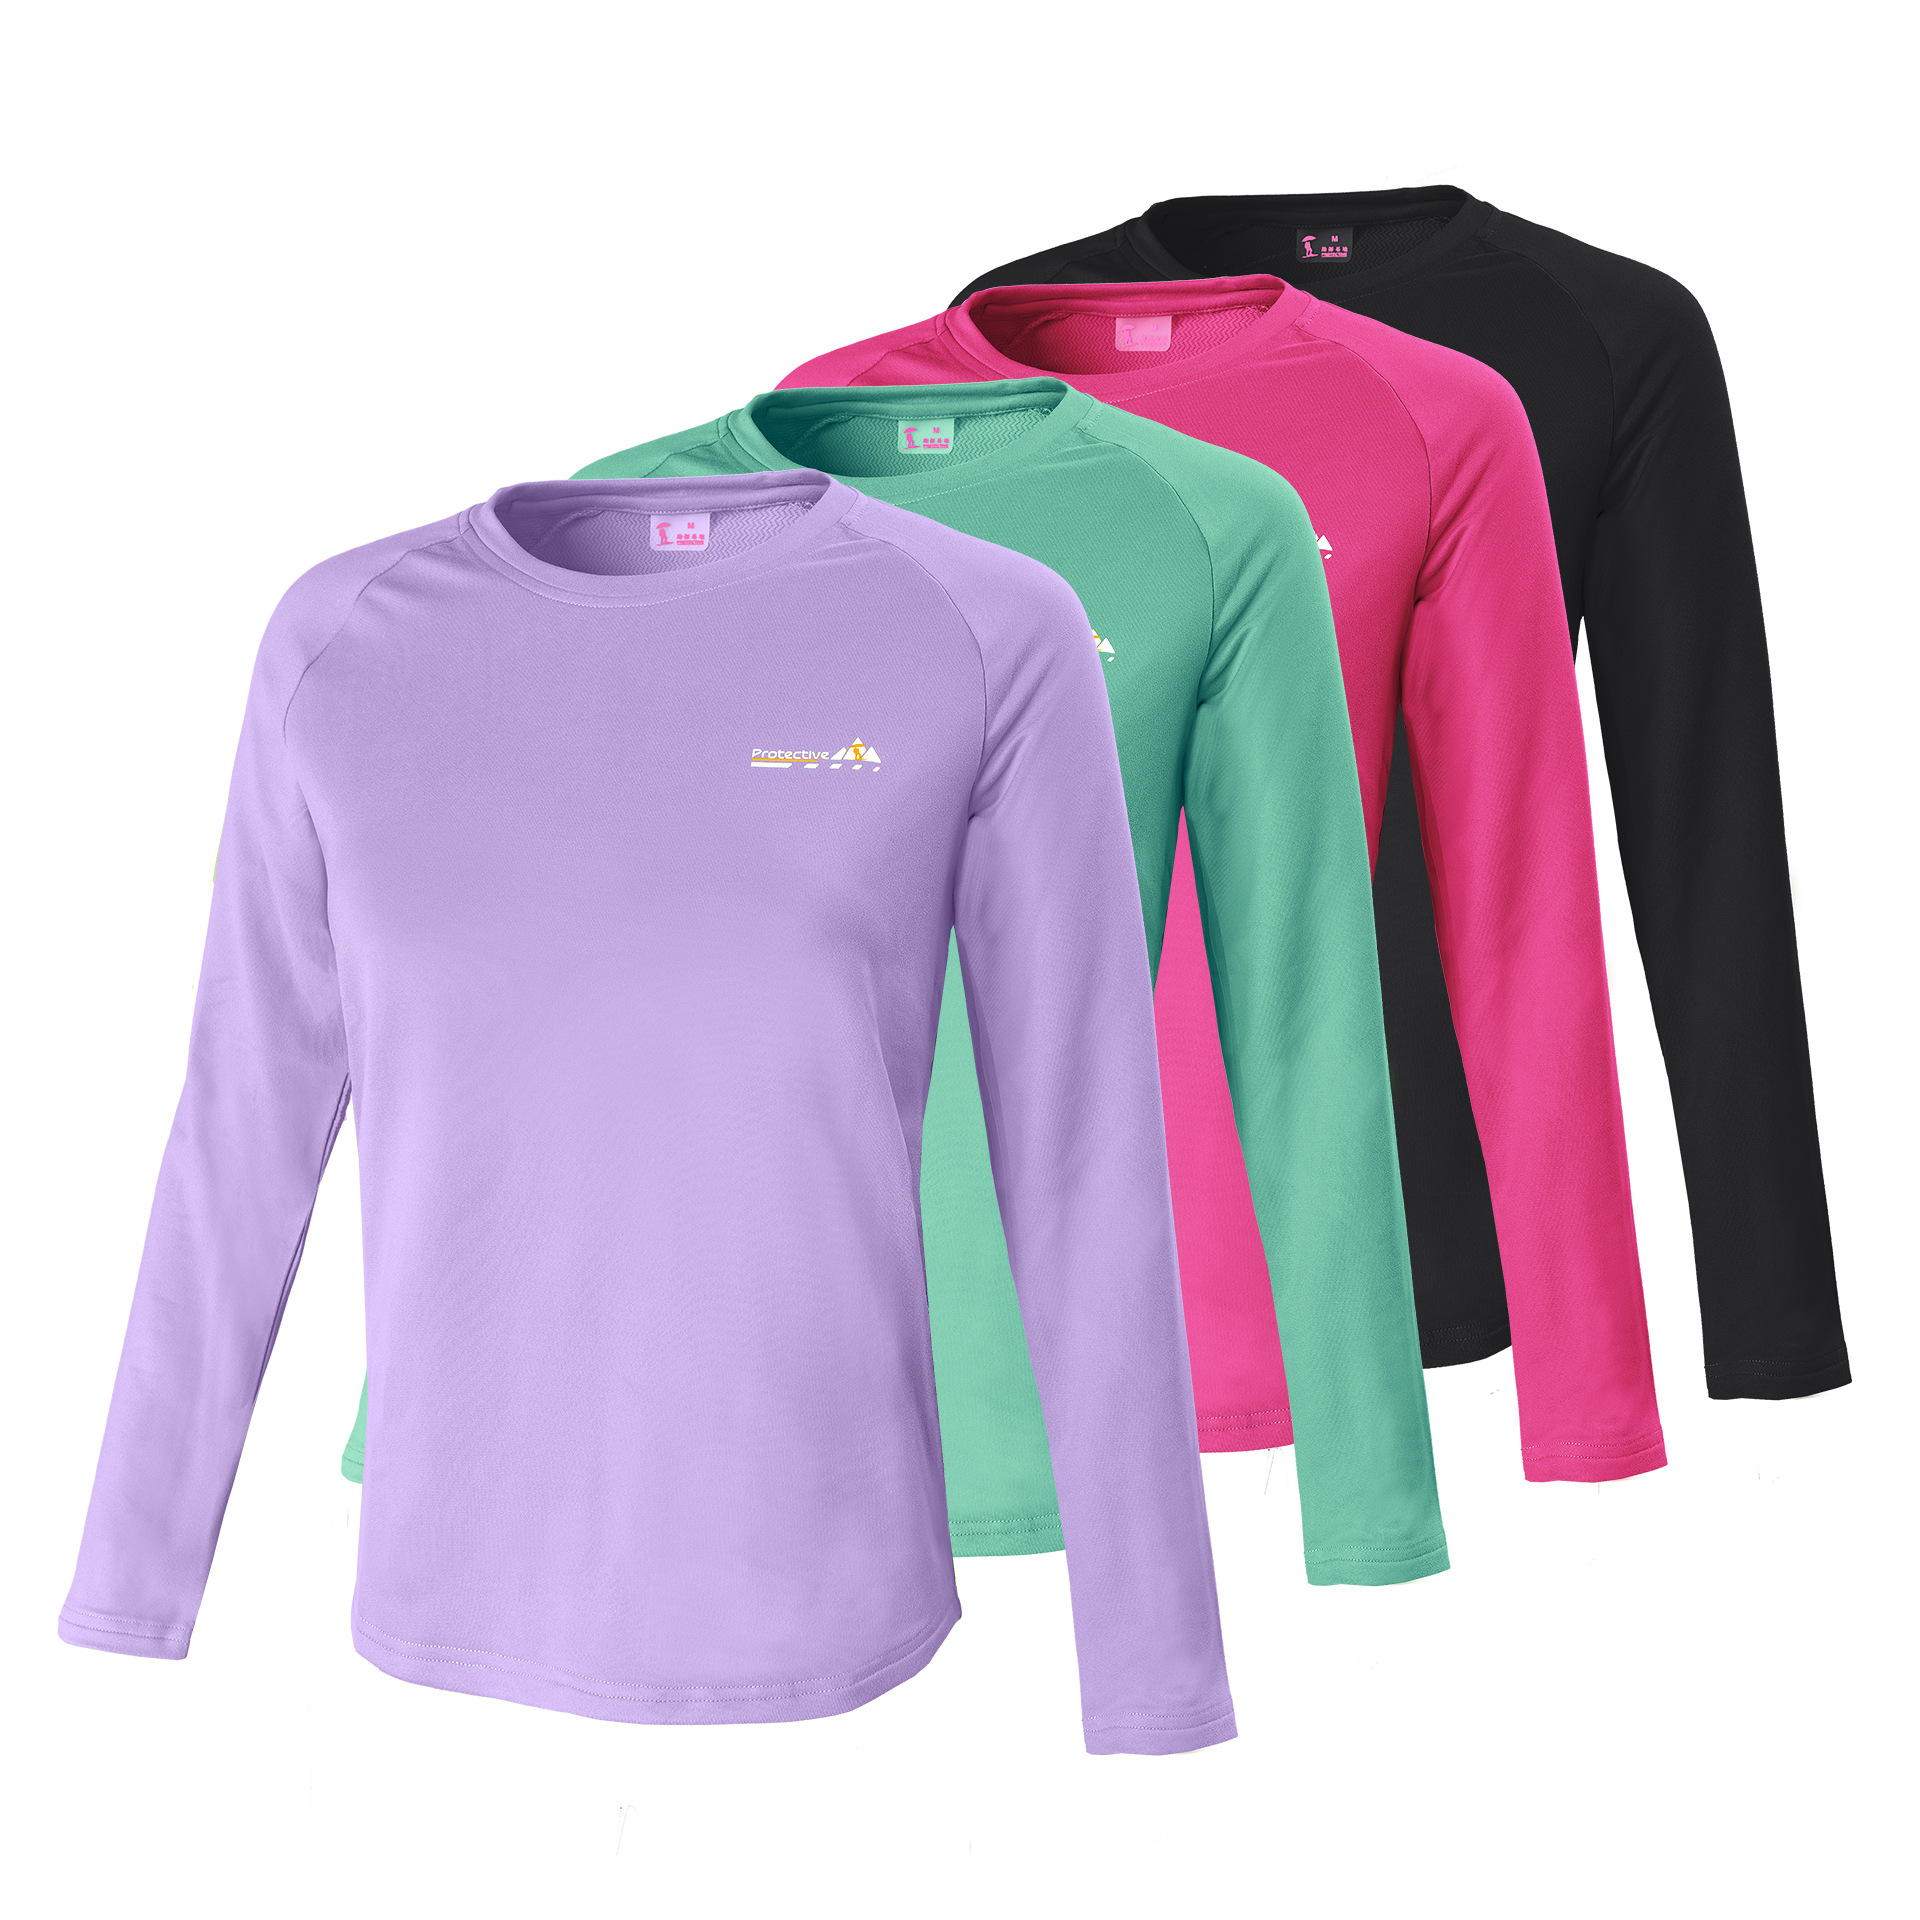 Exploration base fitness suit women's loose running blouse quick drying top sports T-shirt autumn a